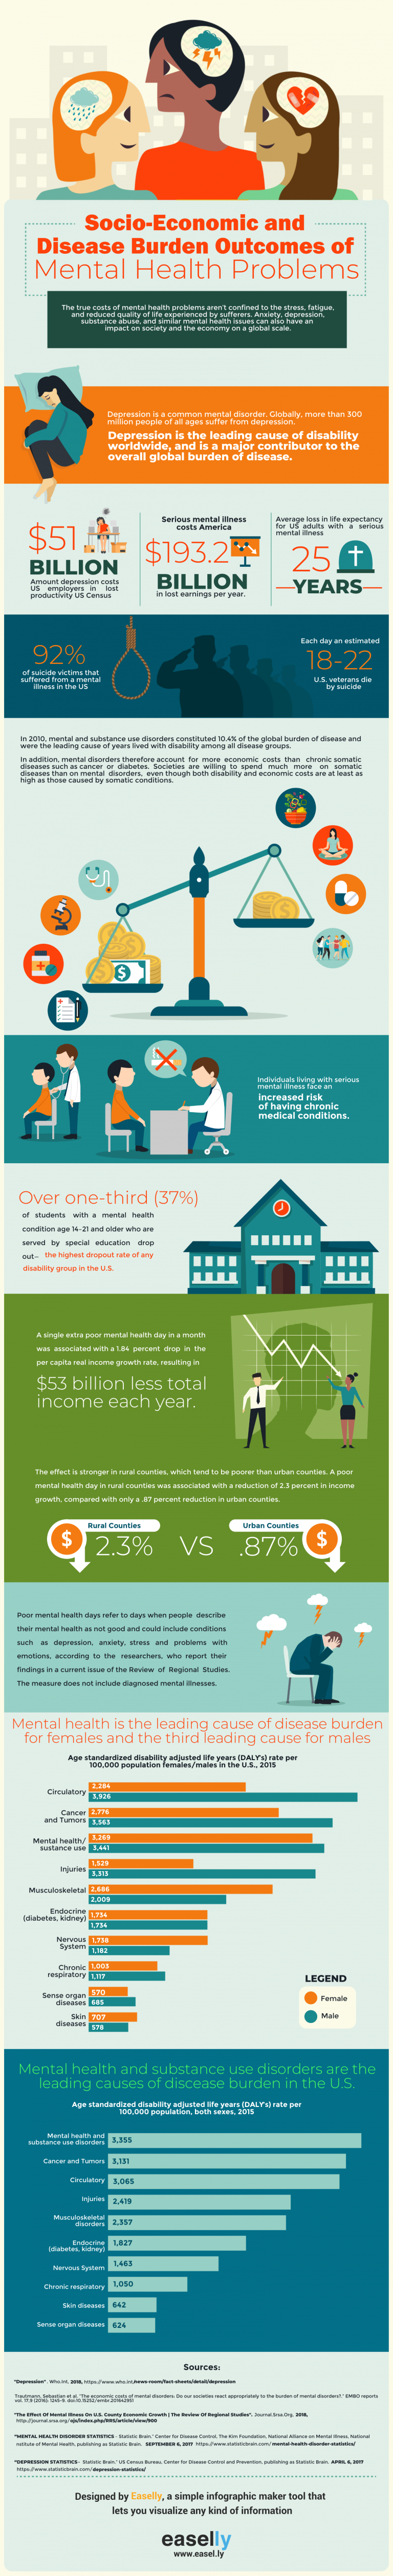 infographic about the socioeconomic costs of mental health issues